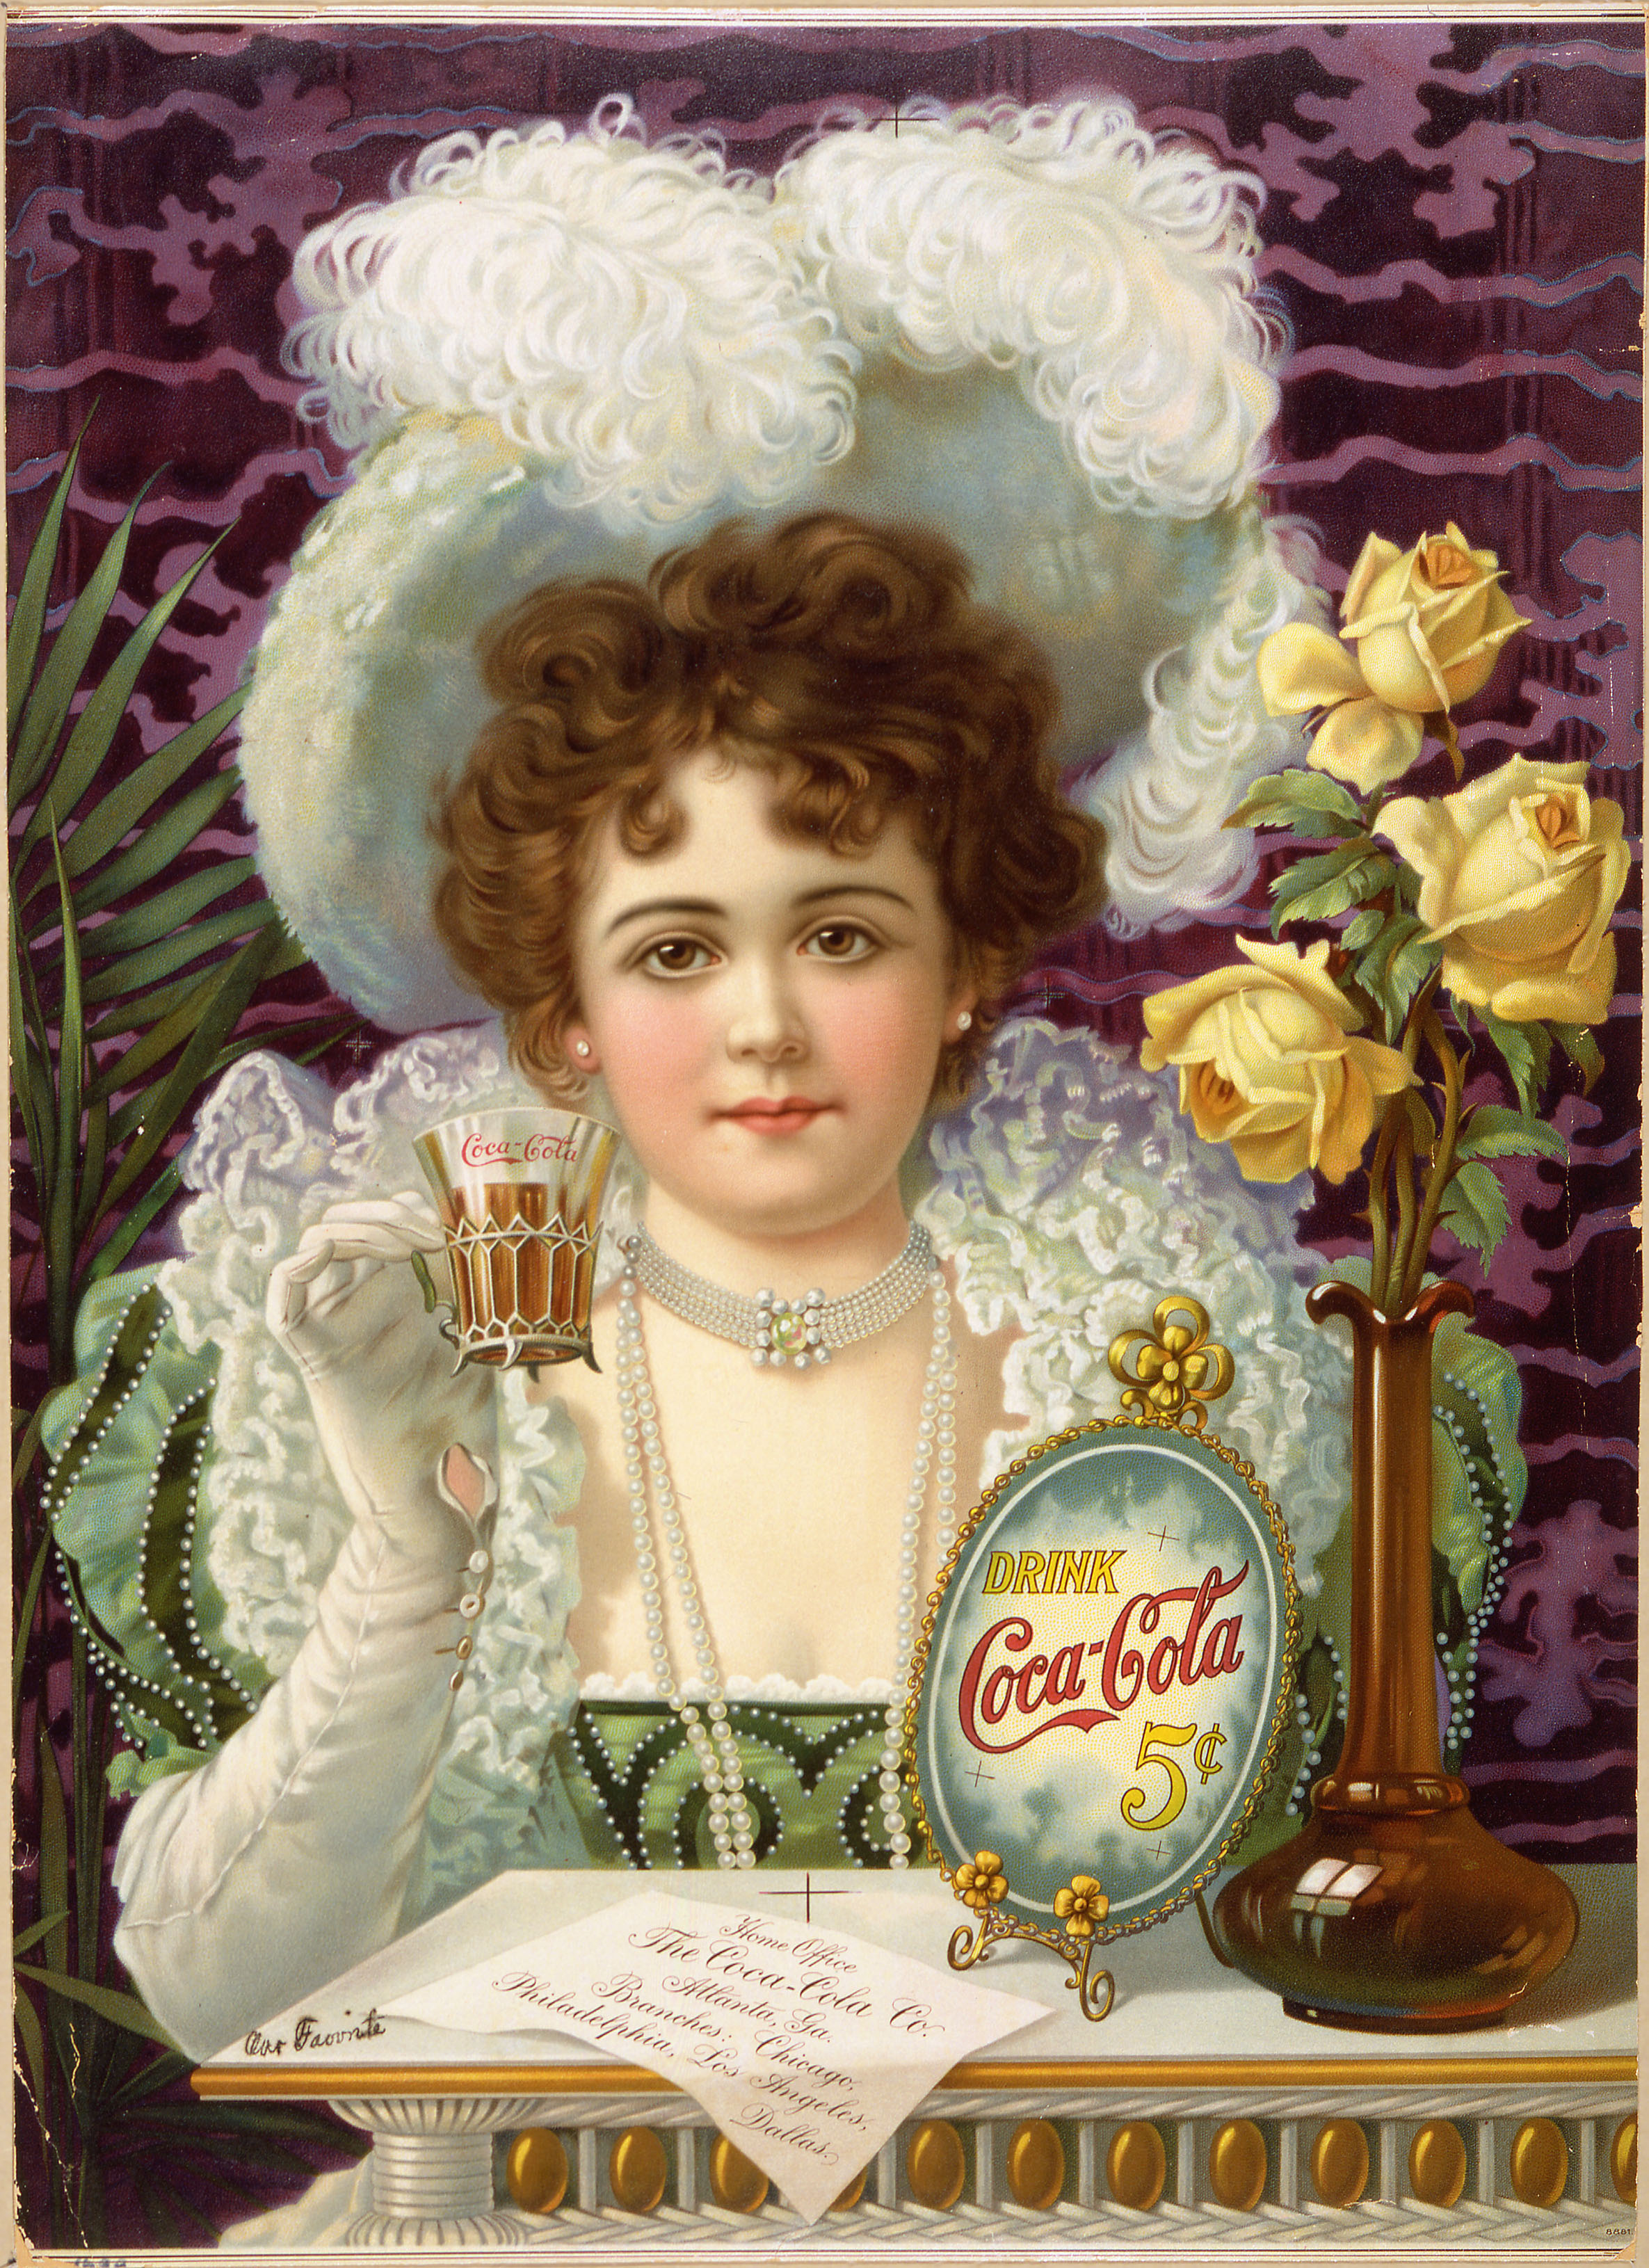 An 1890s advertising poster showing a woman in fancy clothes (partially vaguely influenced by 16th- and 17th-century styles) drinking Coke.